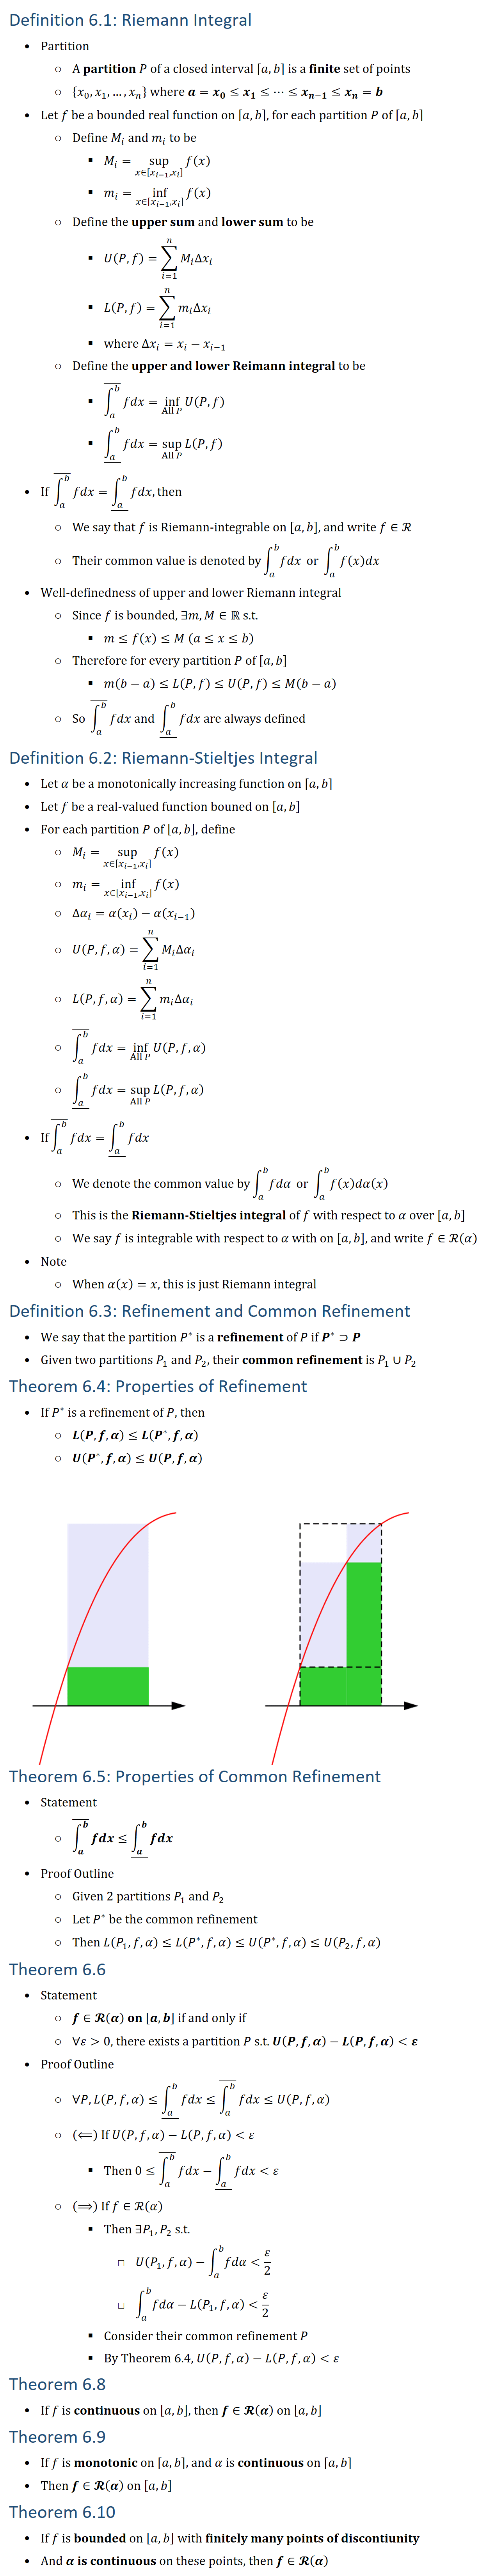 Definition 6.1: Riemann Integral • Partition ○ A partition P of a closed interval [a,b] is a finite set of points ○ {x_0,x_1,…,x_n } where a=x_0≤x_1≤…≤x_(n−1)≤x_n=b • Let f be a bounded real function on [a,b], for each partition P of [a,b] ○ Define M_i and m_i to be § M_i=sup┬(x∈[x_(i−1),x_i ] )f(x) § m_i=inf┬(x∈[x_(i−1),x_i ] )f(x) ○ Define the upper sum and lower sum to be § U(P,f)=∑_(i=1)^n▒〖M_i Δx_i 〗 § L(P,f)=∑_(i=1)^n▒〖m_i Δx_i 〗 § where Δx_i=x_i−x_(i−1) ○ Define the upper and lower Reimann integral to be § (∫_a^b▒ ) ̅fdx=inf┬(All P)U(P,f) § ▁(∫_a^b▒ ) fdx=sup┬(All P)L(P,f) • If (∫_a^b▒ ) ̅fdx=▁(∫_a^b▒ ) fdx, then ○ We say that f is Riemann\-integrable on [a,b], and write f∈R ○ Their common value is denoted by∫_a^b▒fdx or ∫_a^b▒f(x)dx • Well-definedness of upper and lower Riemann integral ○ Since f is bounded, ∃m,M∈R s.t. § m≤f(x)≤M (a≤x≤b) ○ Therefore for every partition P of [a,b] § m(b−a)≤L(P,f)≤U(P,f)≤M(b−a) ○ So (∫_a^b▒ ) ̅fdx and ▁(∫_a^b▒ ) fdx are always defined Definition 6.2: Riemann-Stieltjes Integral • Let α be a monotonically increasing function on [a,b] • Let f be a real-valued function bouned on [a,b] • For each partition P of [a,b], define ○ M_i=sup┬(x∈[x_(i−1),x_i ] )f(x) ○ m_i=inf┬(x∈[x_(i−1),x_i ] )f(x) ○ Δα_i=α(x_i )−α(x_(i−1) ) ○ U(P,f,α)=∑_(i=1)^n▒〖M_i Δα_i 〗 ○ L(P,f,α)=∑_(i=1)^n▒〖m_i Δα_i 〗 ○ (∫_a^b▒ ) ̅fdx=inf┬(All P)U(P,f,α) ○ ▁(∫_a^b▒ ) fdx=sup┬(All P)L(P,f,α) • If(∫_a^b▒ ) ̅fdx=▁(∫_a^b▒ ) fdx ○ We denote the common value by∫_a^b▒fdα or ∫_a^b▒f(x)dα(x) ○ This is the Riemann-Stieltjes integral of f with respect to α over [a,b] ○ We say f is integrable with respect to α with on [a,b], and write f∈R(α) • Note ○ When α(x)=x, this is just Riemann integral Definition 6.3: Refinement and Common Refinement • We say that the partition P^∗ is a refinement of P if P^∗⊃P • Given two partitions P_1 and P_2, their common refinement is P_1∪P_2 Theorem 6.4: Properties of Refinement • If P^∗ is a refinement of P, then ○ L(P,f,α)≤L(P^∗,f,α) ○ U(P^∗,f,α)